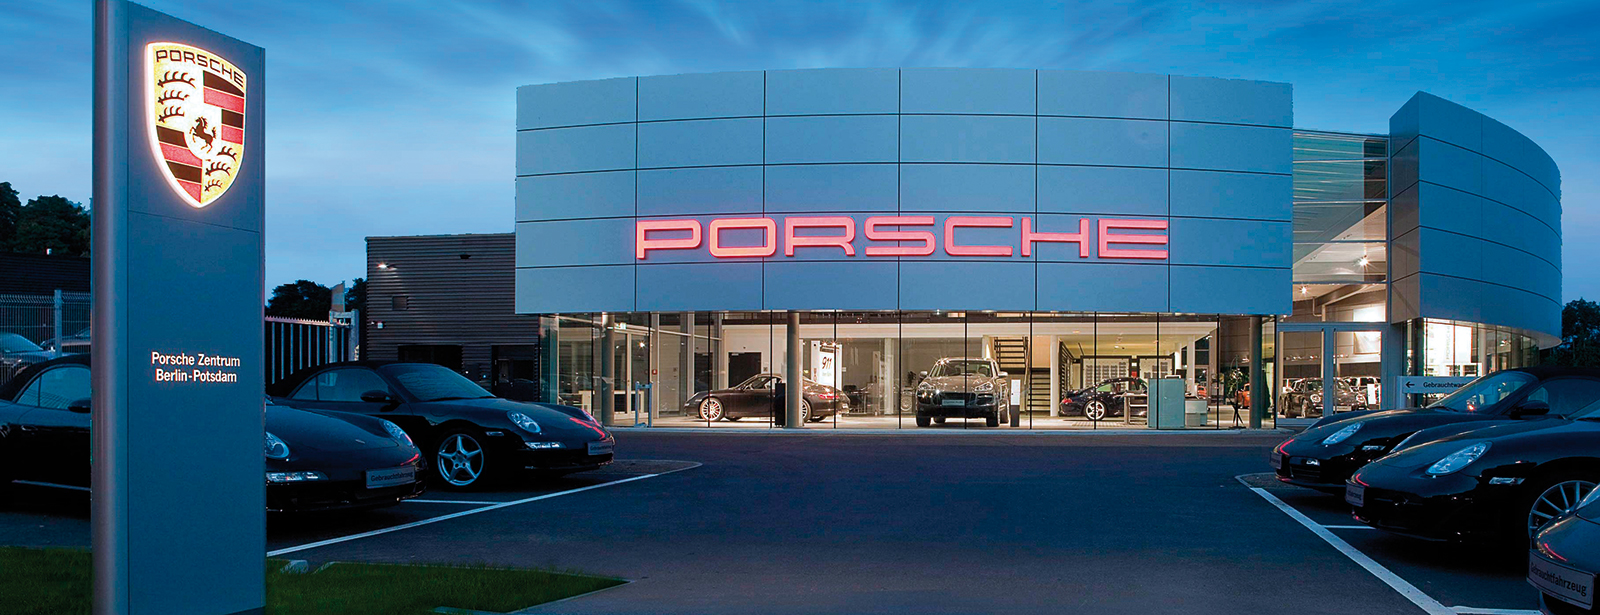 porsche zentrum berlin potsdam herzlich willkommen. Black Bedroom Furniture Sets. Home Design Ideas